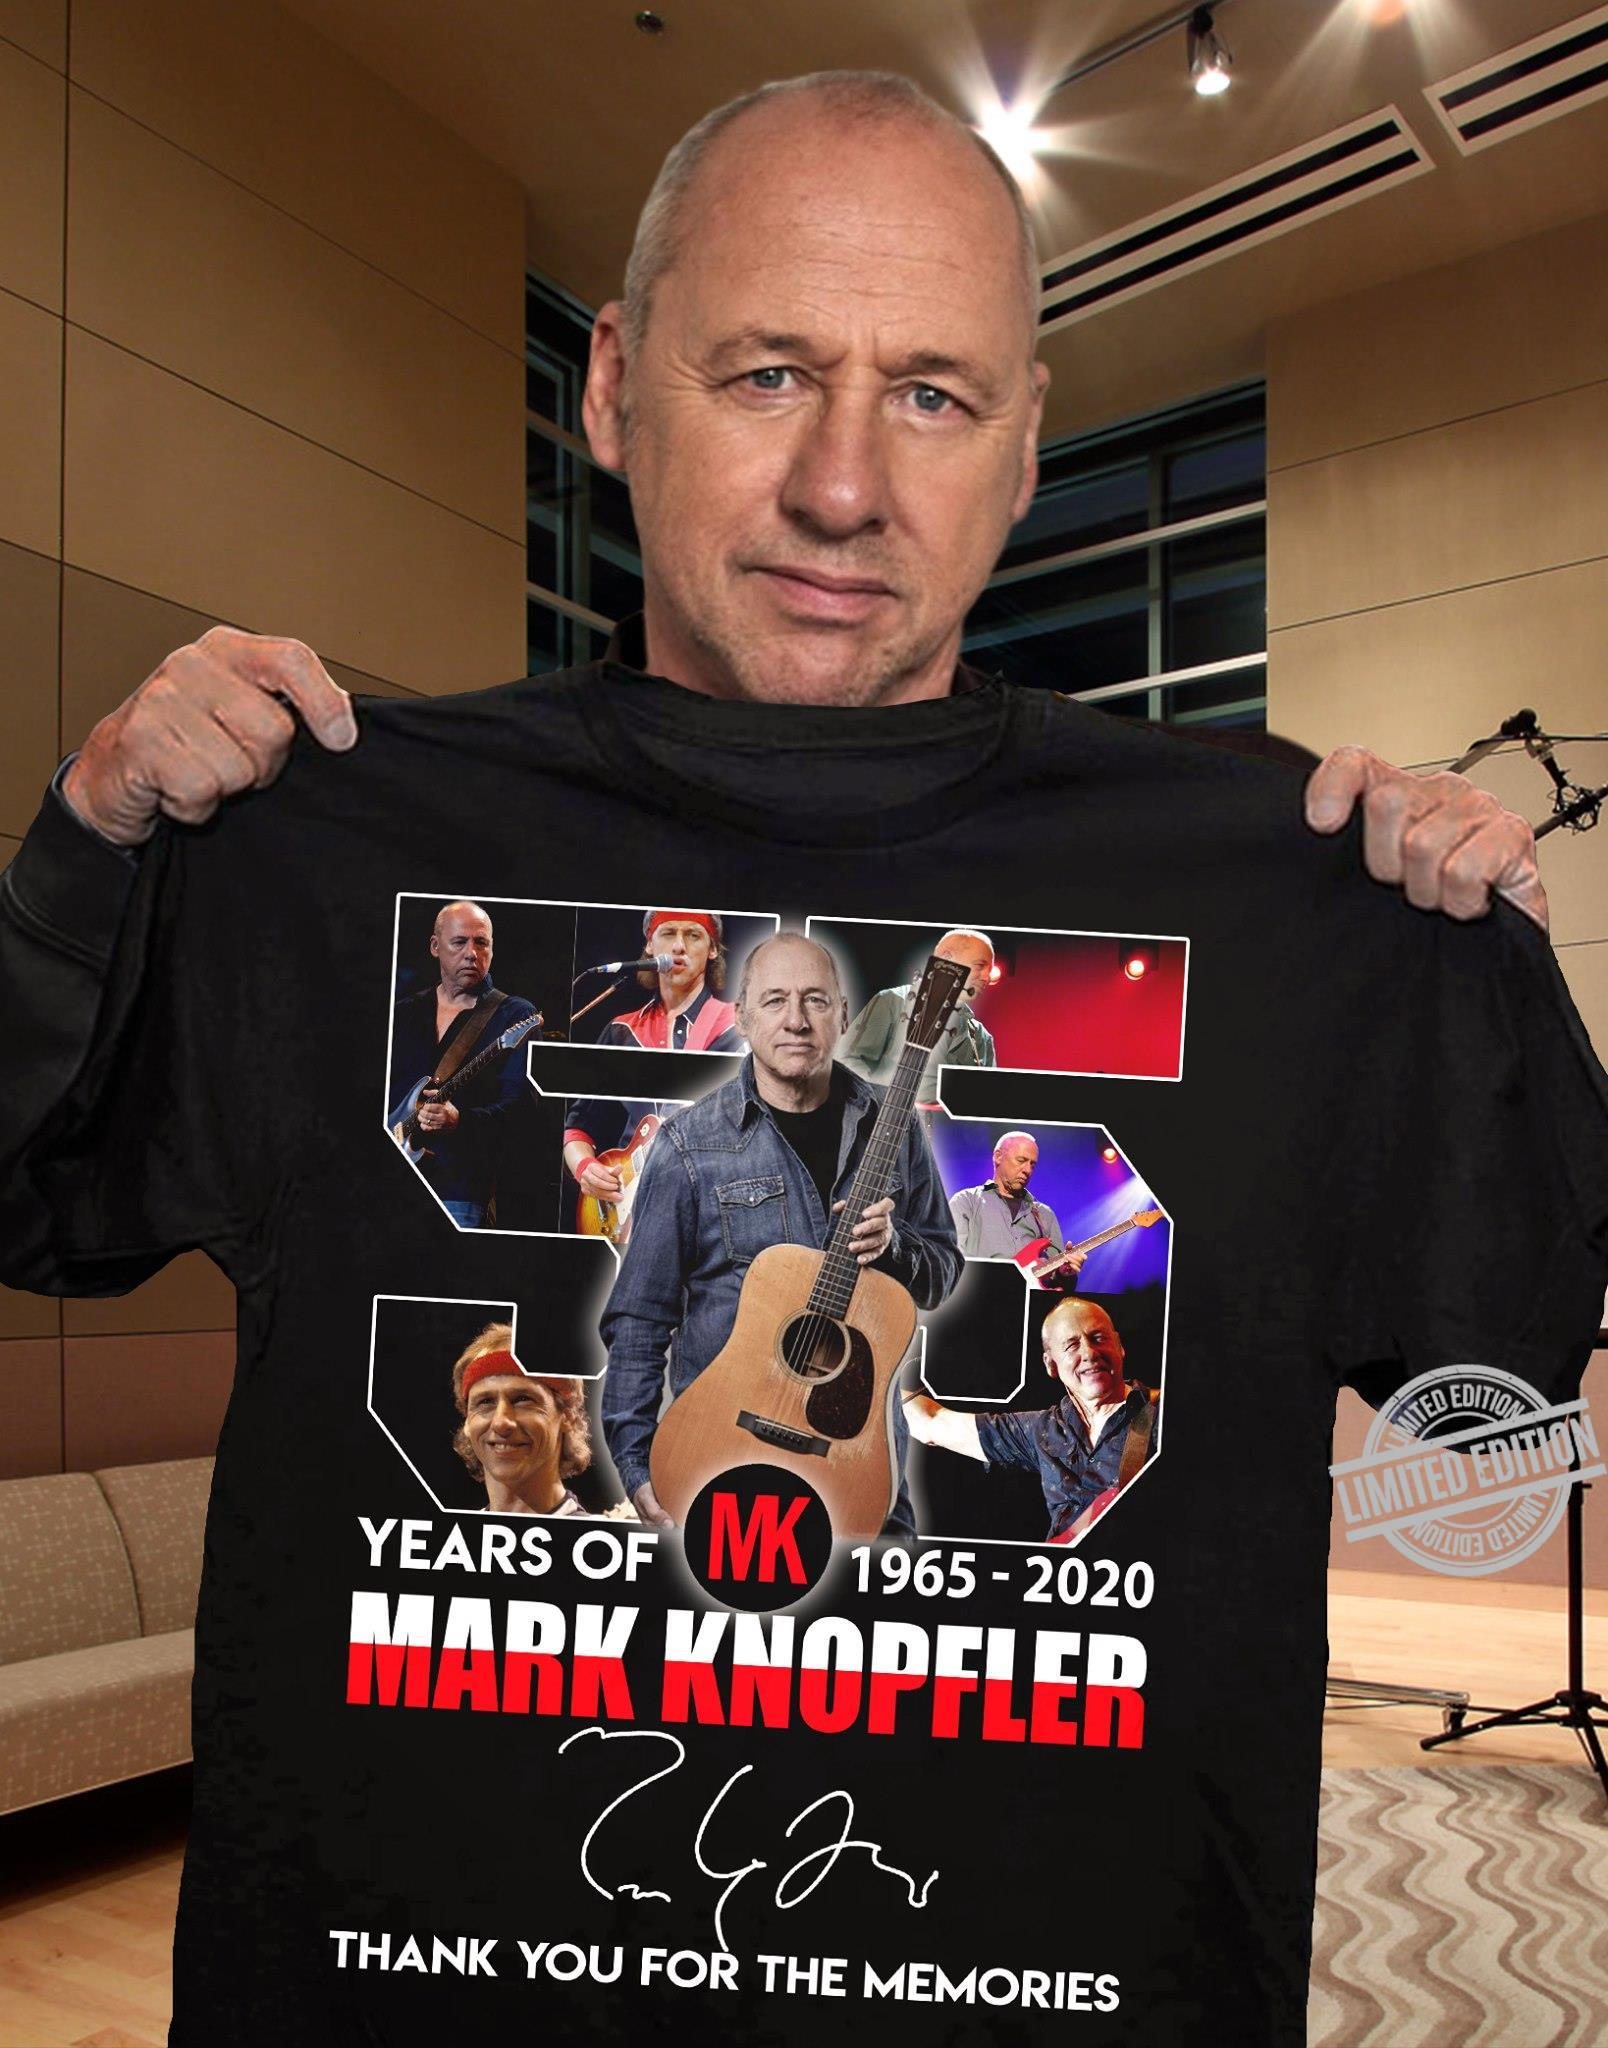 55 Years Of Mark Knopfler 1965 2020 Signature Thank You For The Memories Shirt